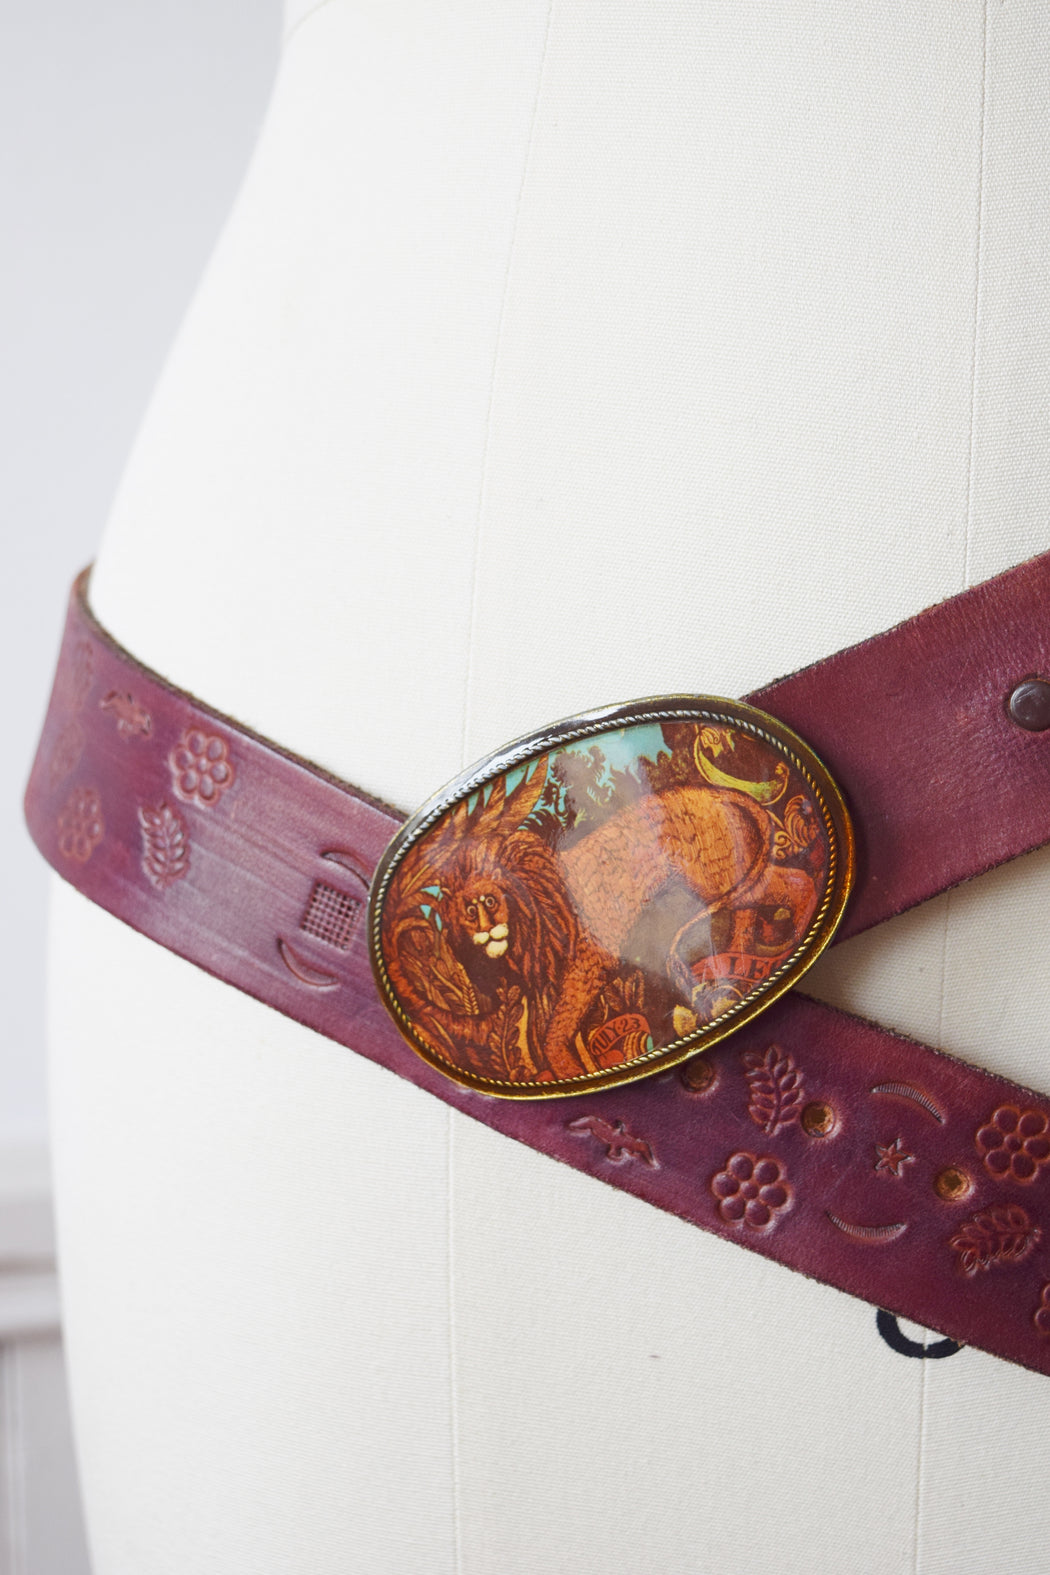 Astrology LEO Embossed Belt | 1970s | 36-42""